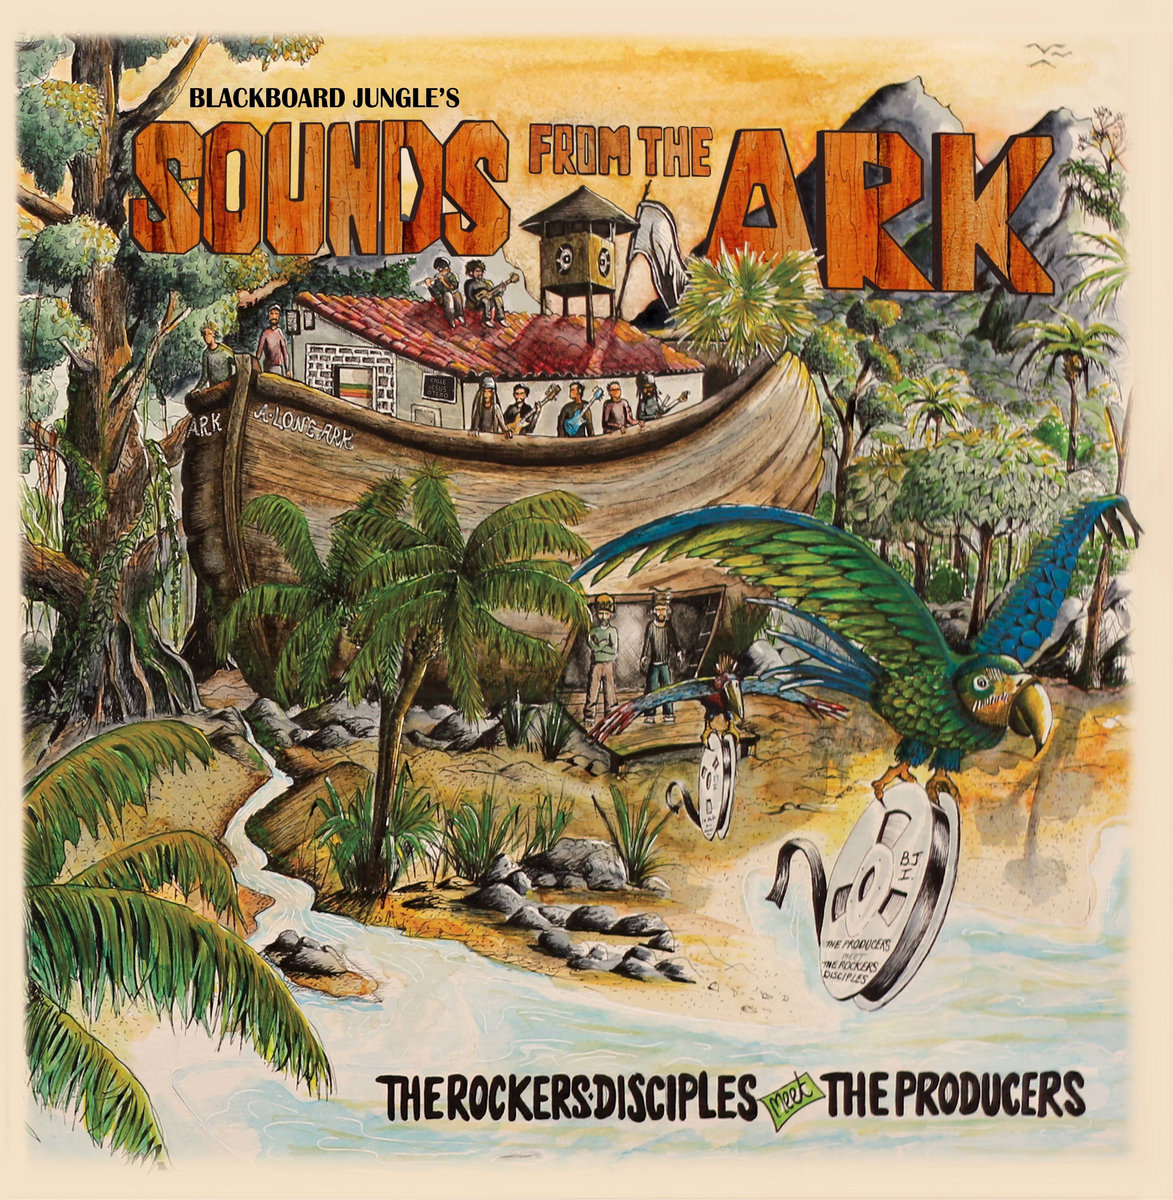 Rockers Disciples meet The Producers - Sounds from the ark